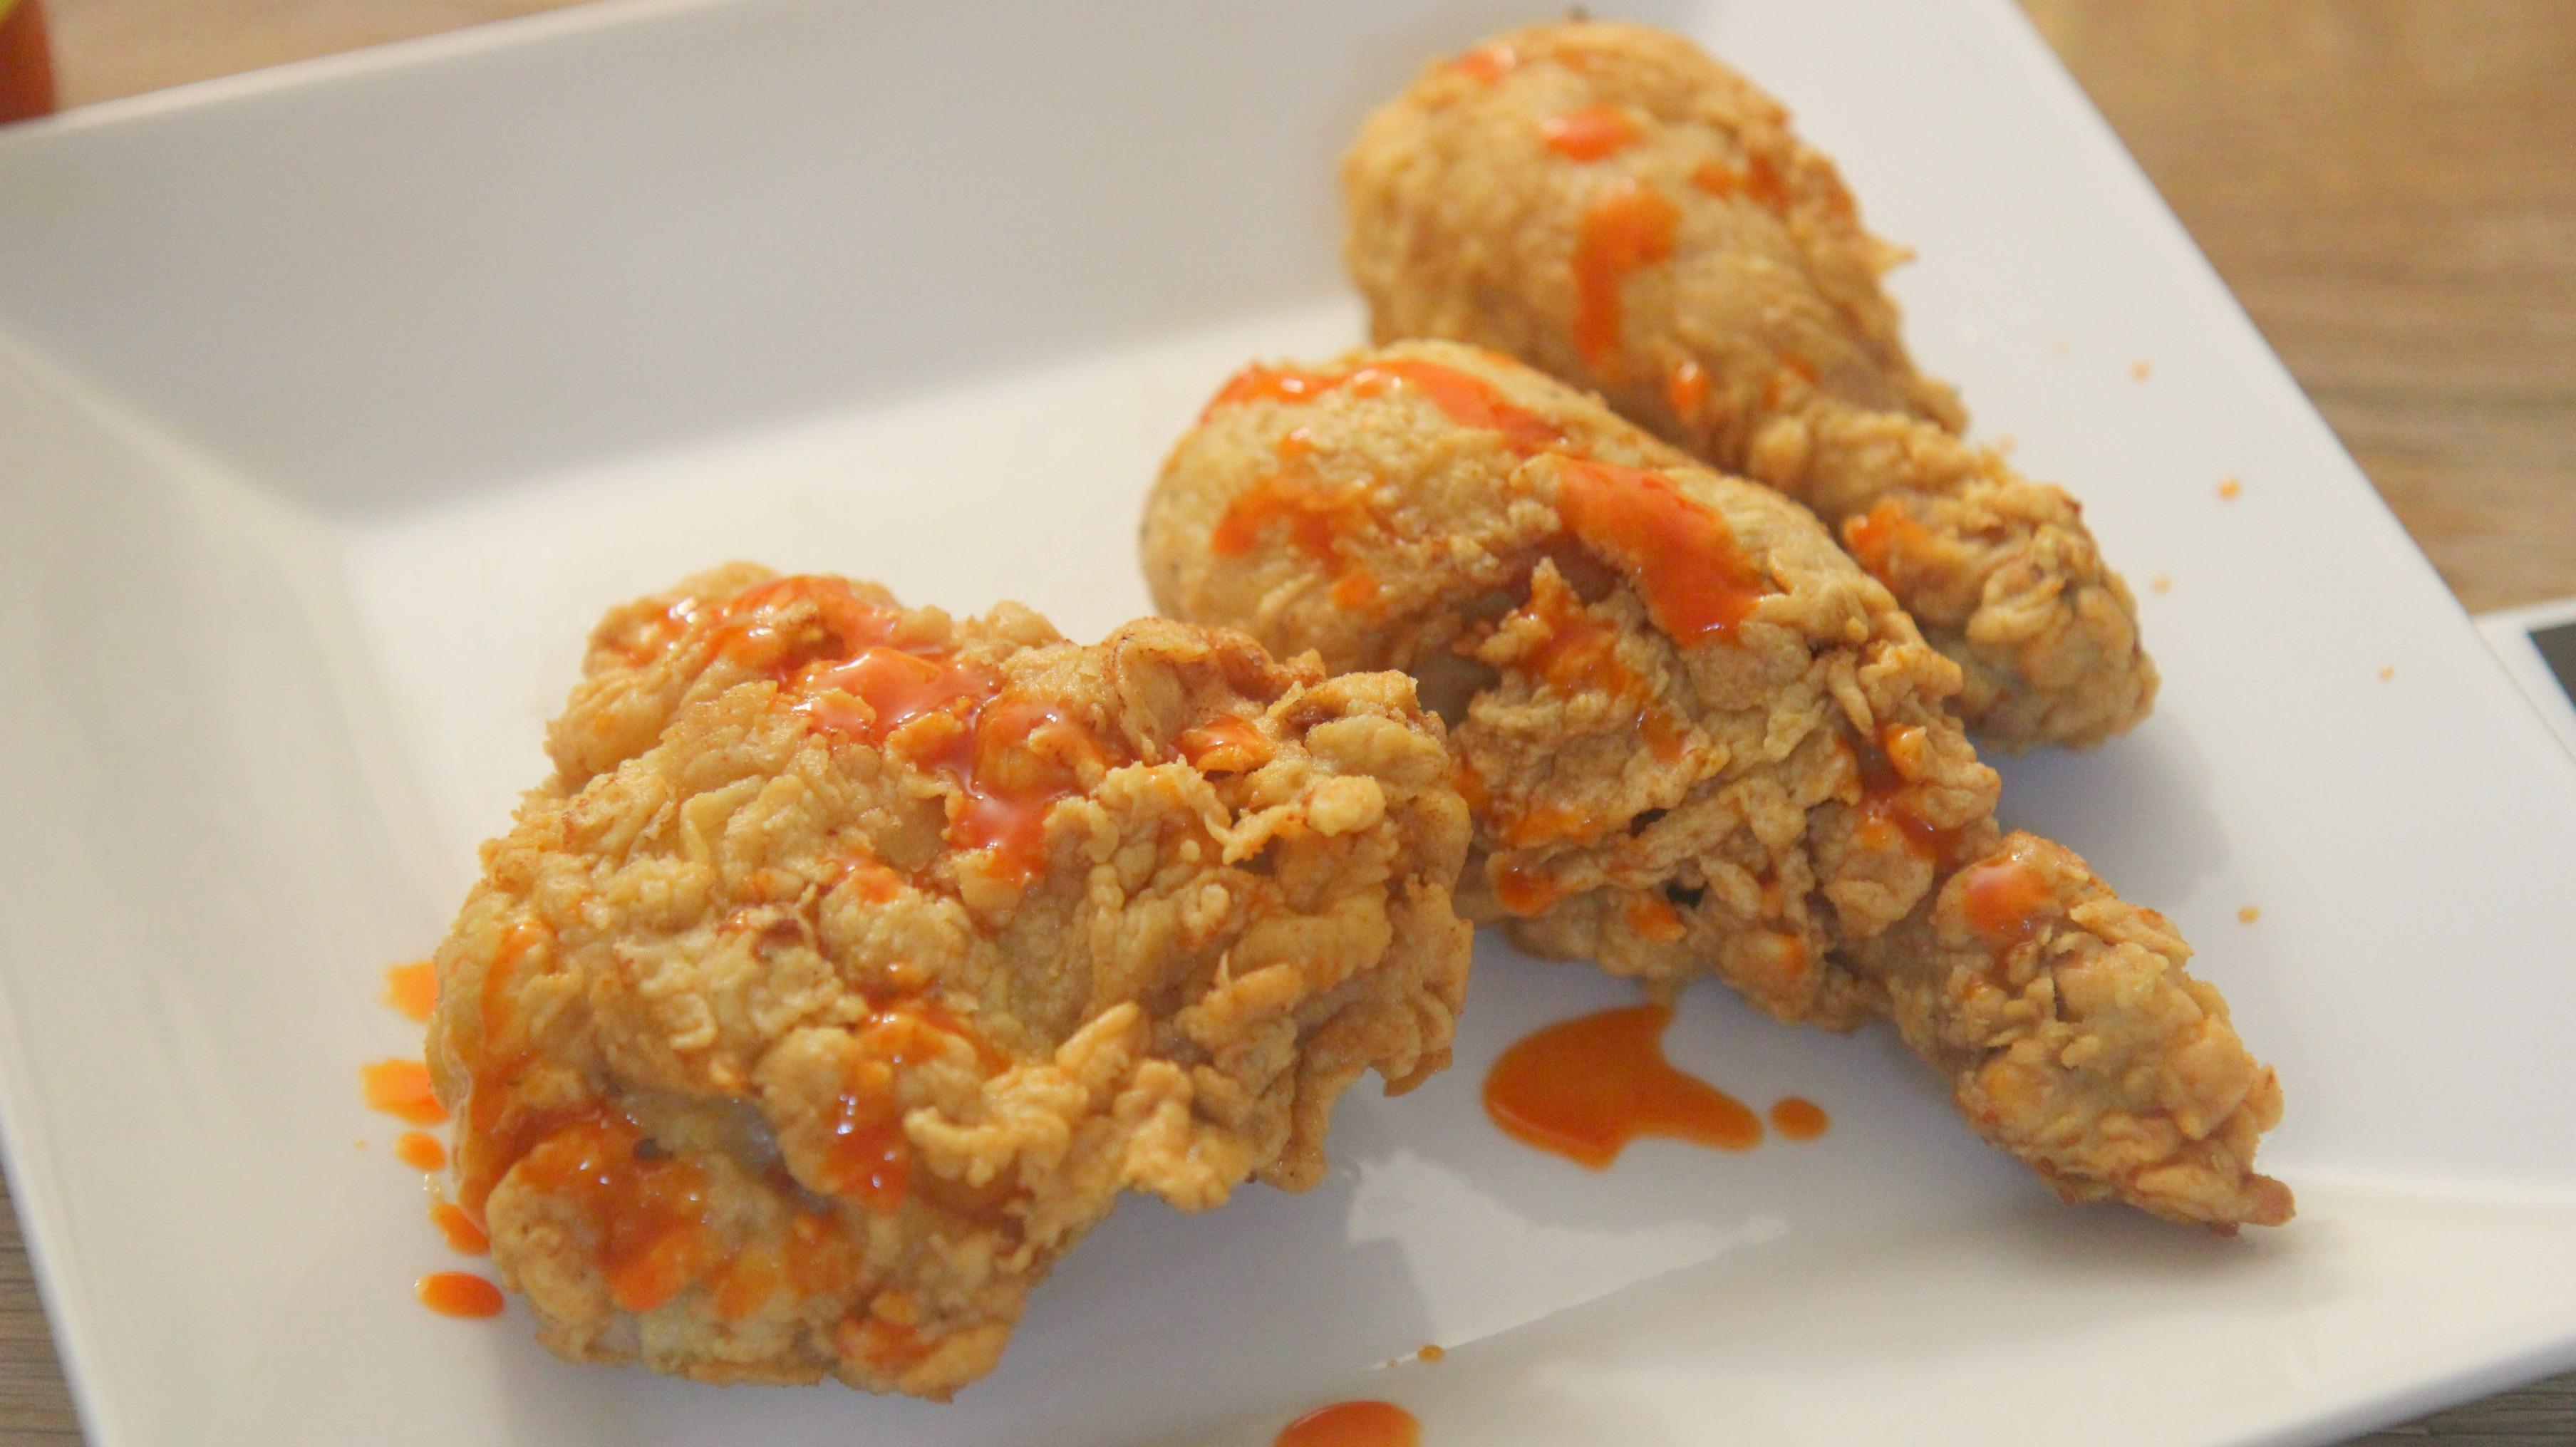 Crispy fried buttermilk chicken drizzled with hot sauce